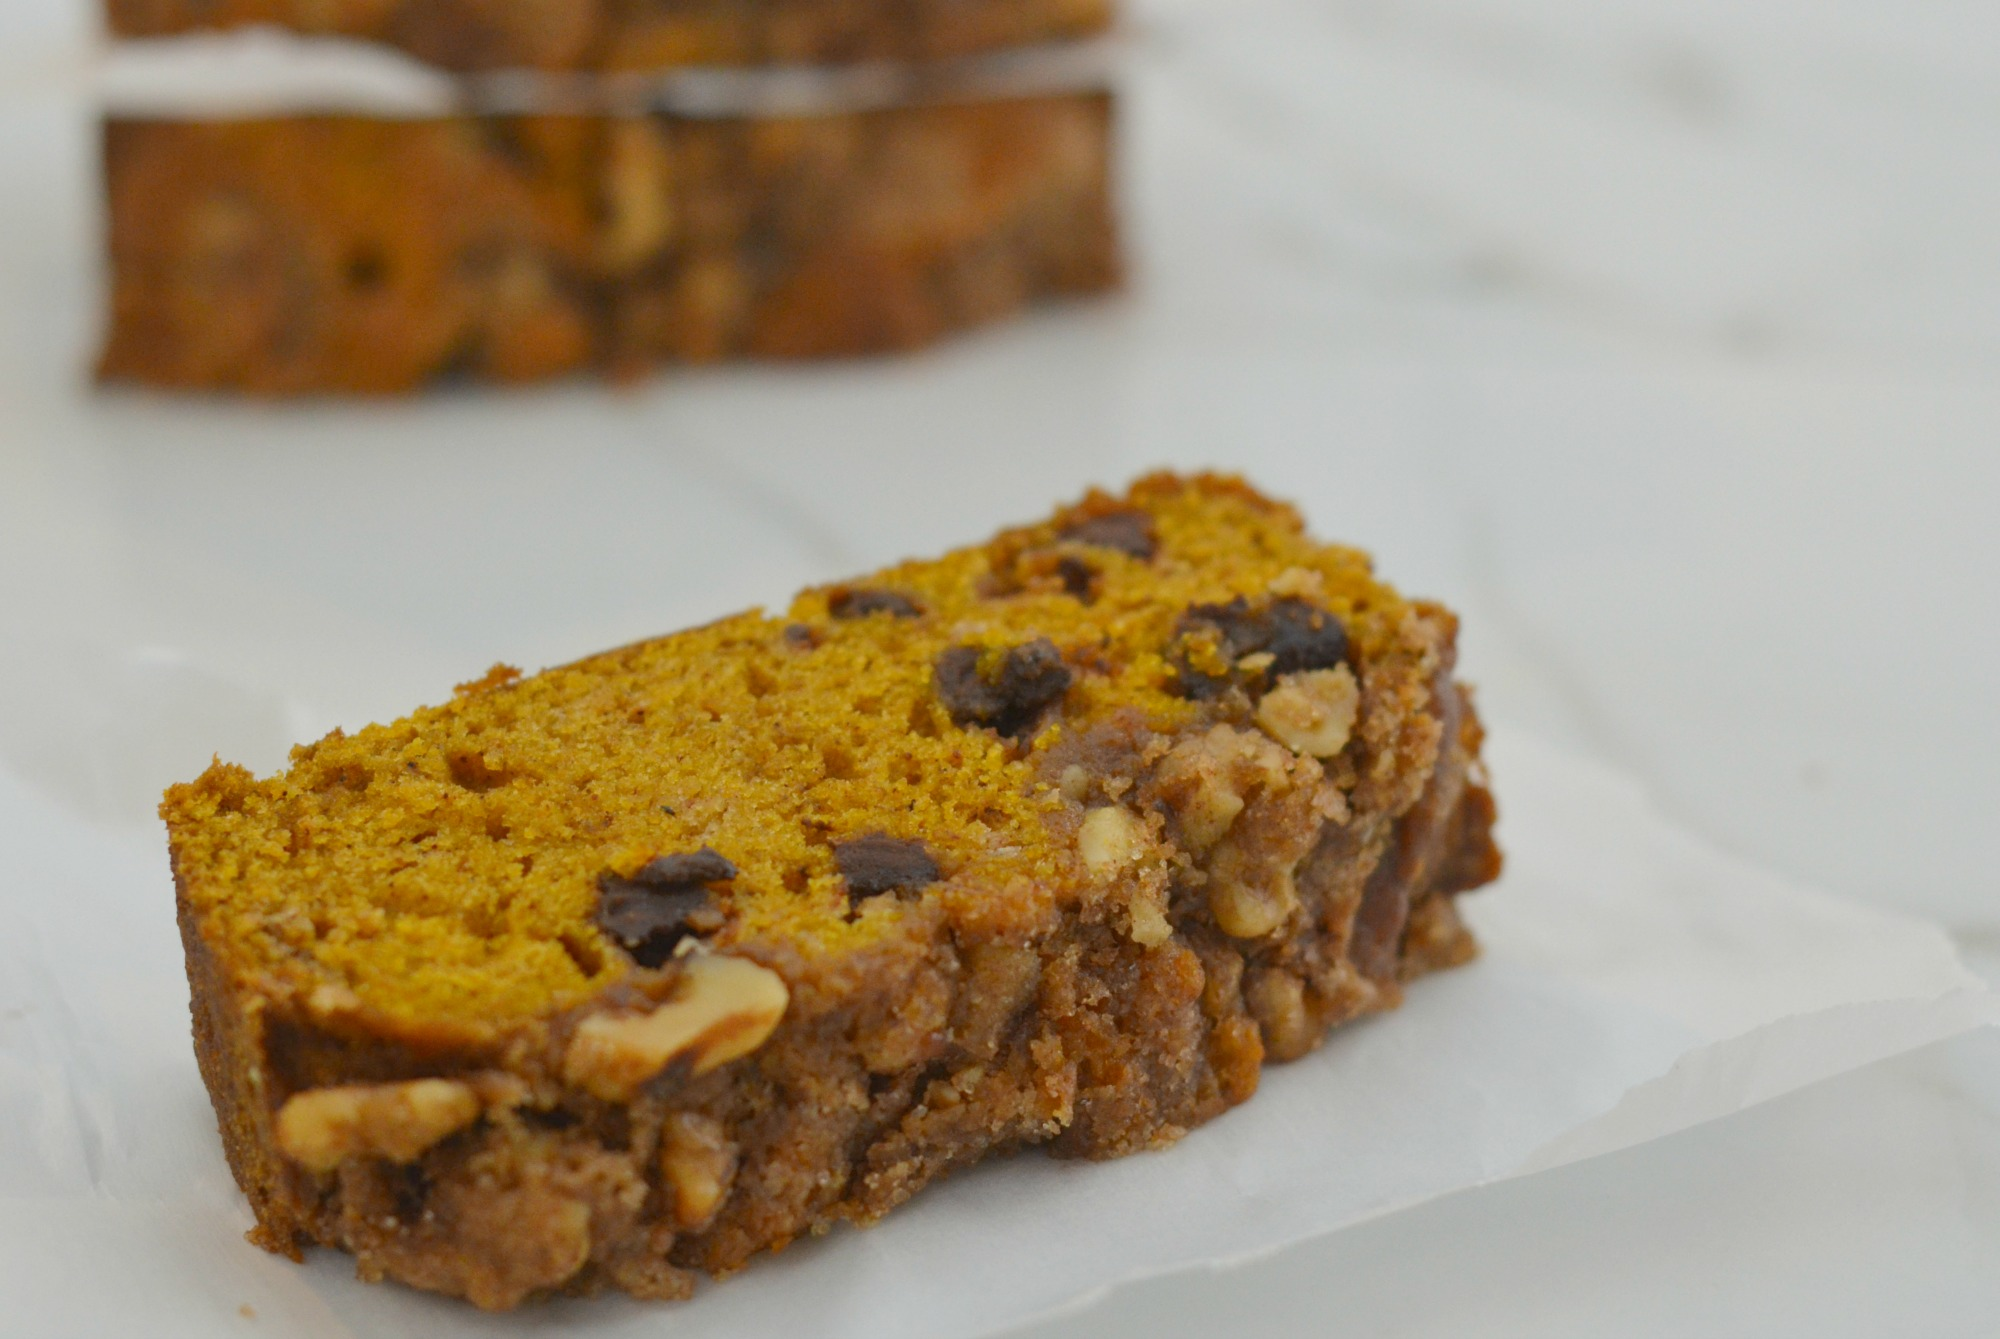 Chocolate Chip Pumpkin Bread| My basic pumpkin bread recipe with added chocolate and a special topping. So good! | www.thesurferskitchen.com